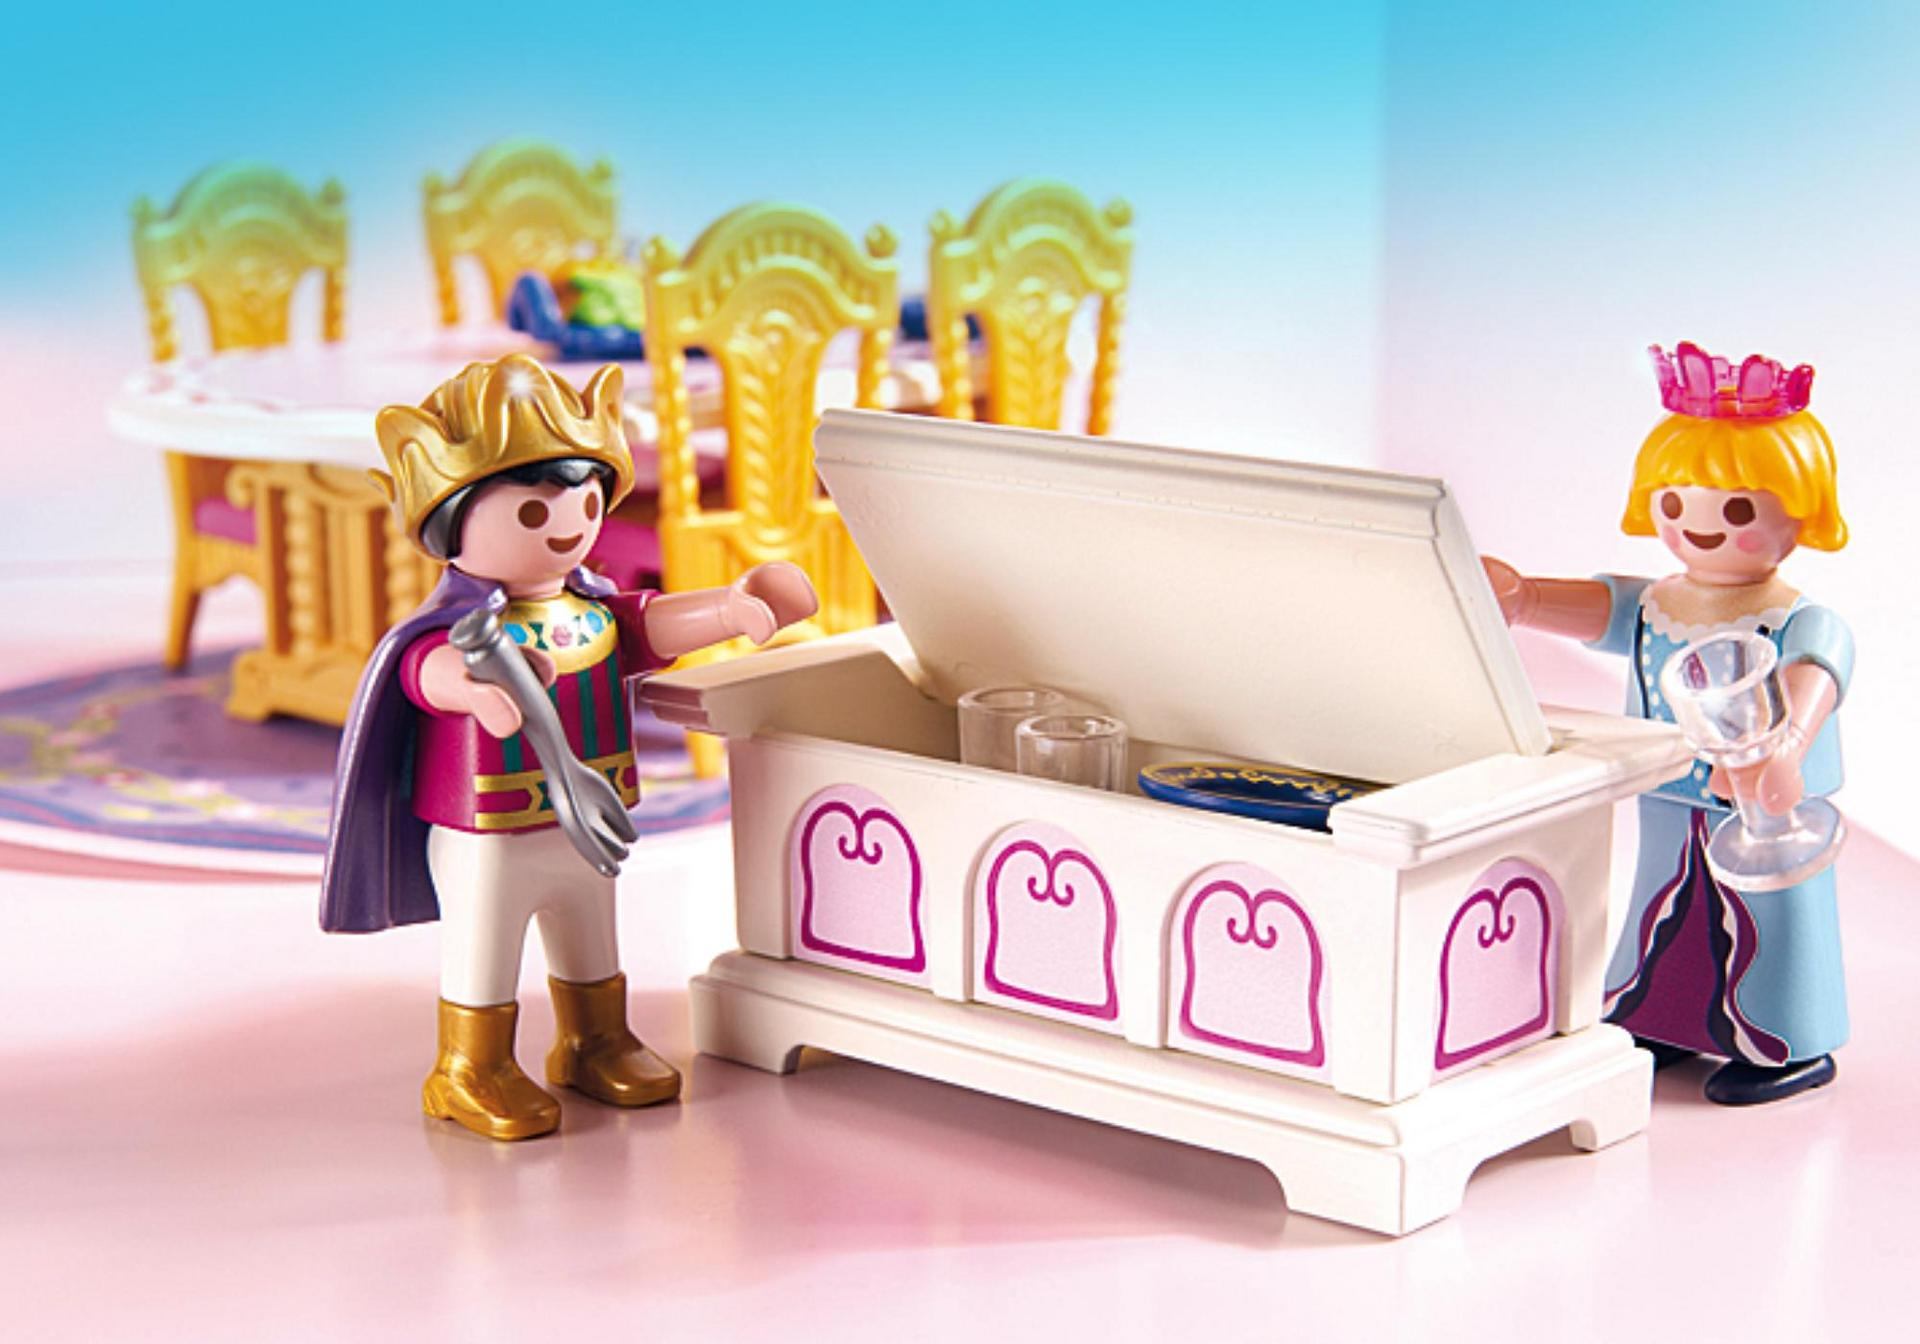 Salle manger royale 5145 playmobil france for Salle a manger playmobil city life